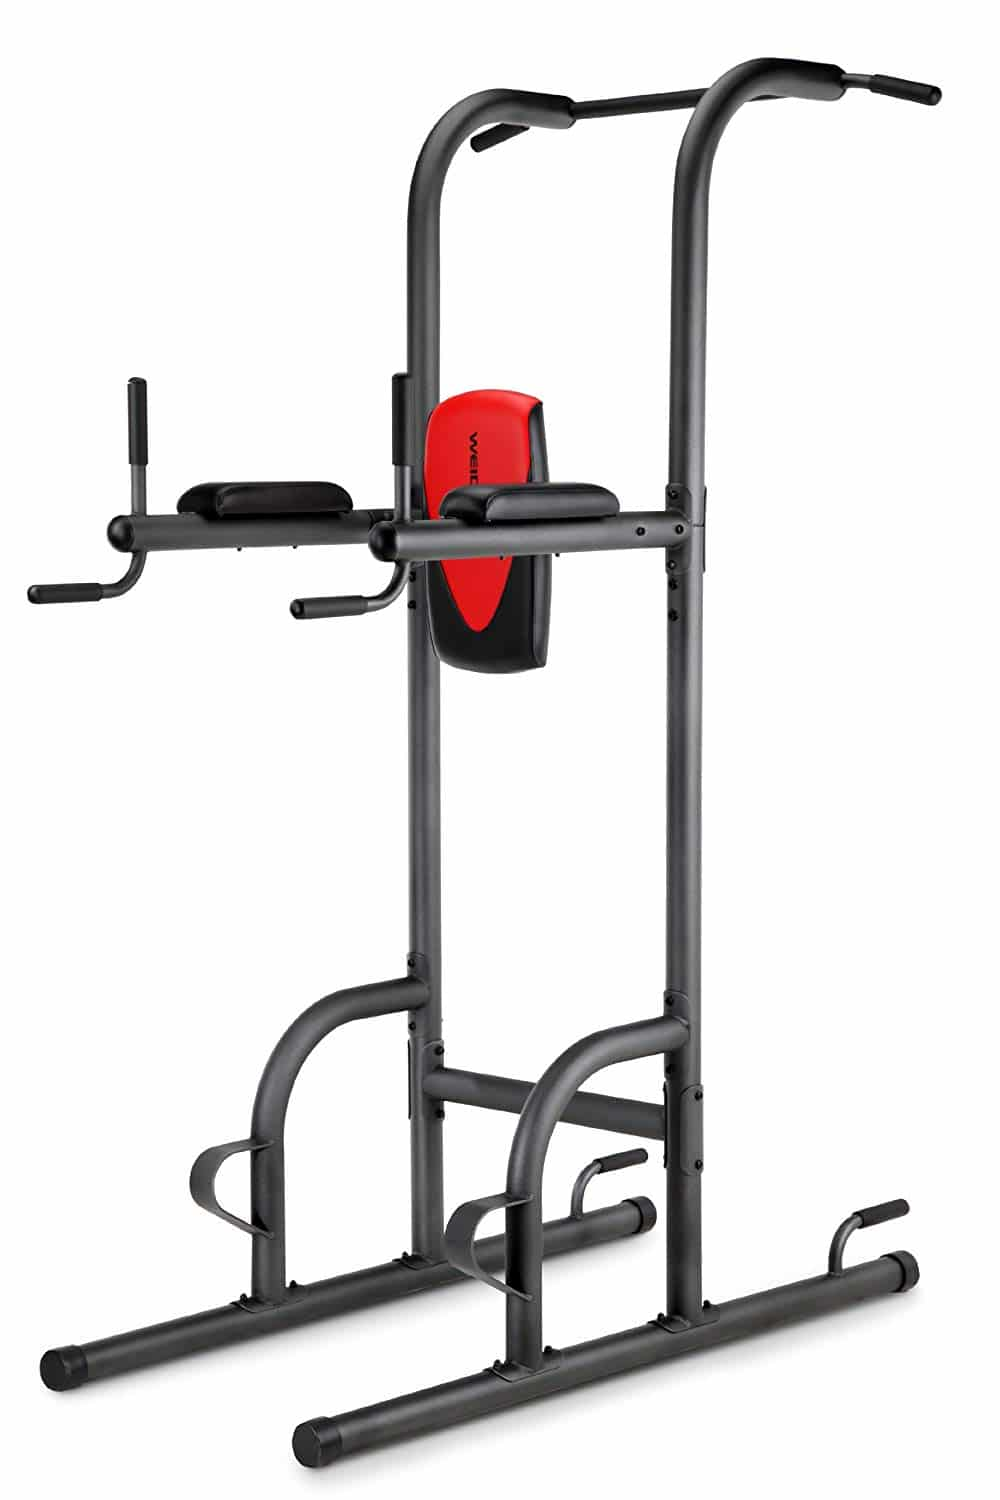 Weider WEBE99712 Power Tower Review 2021- Aim Workout